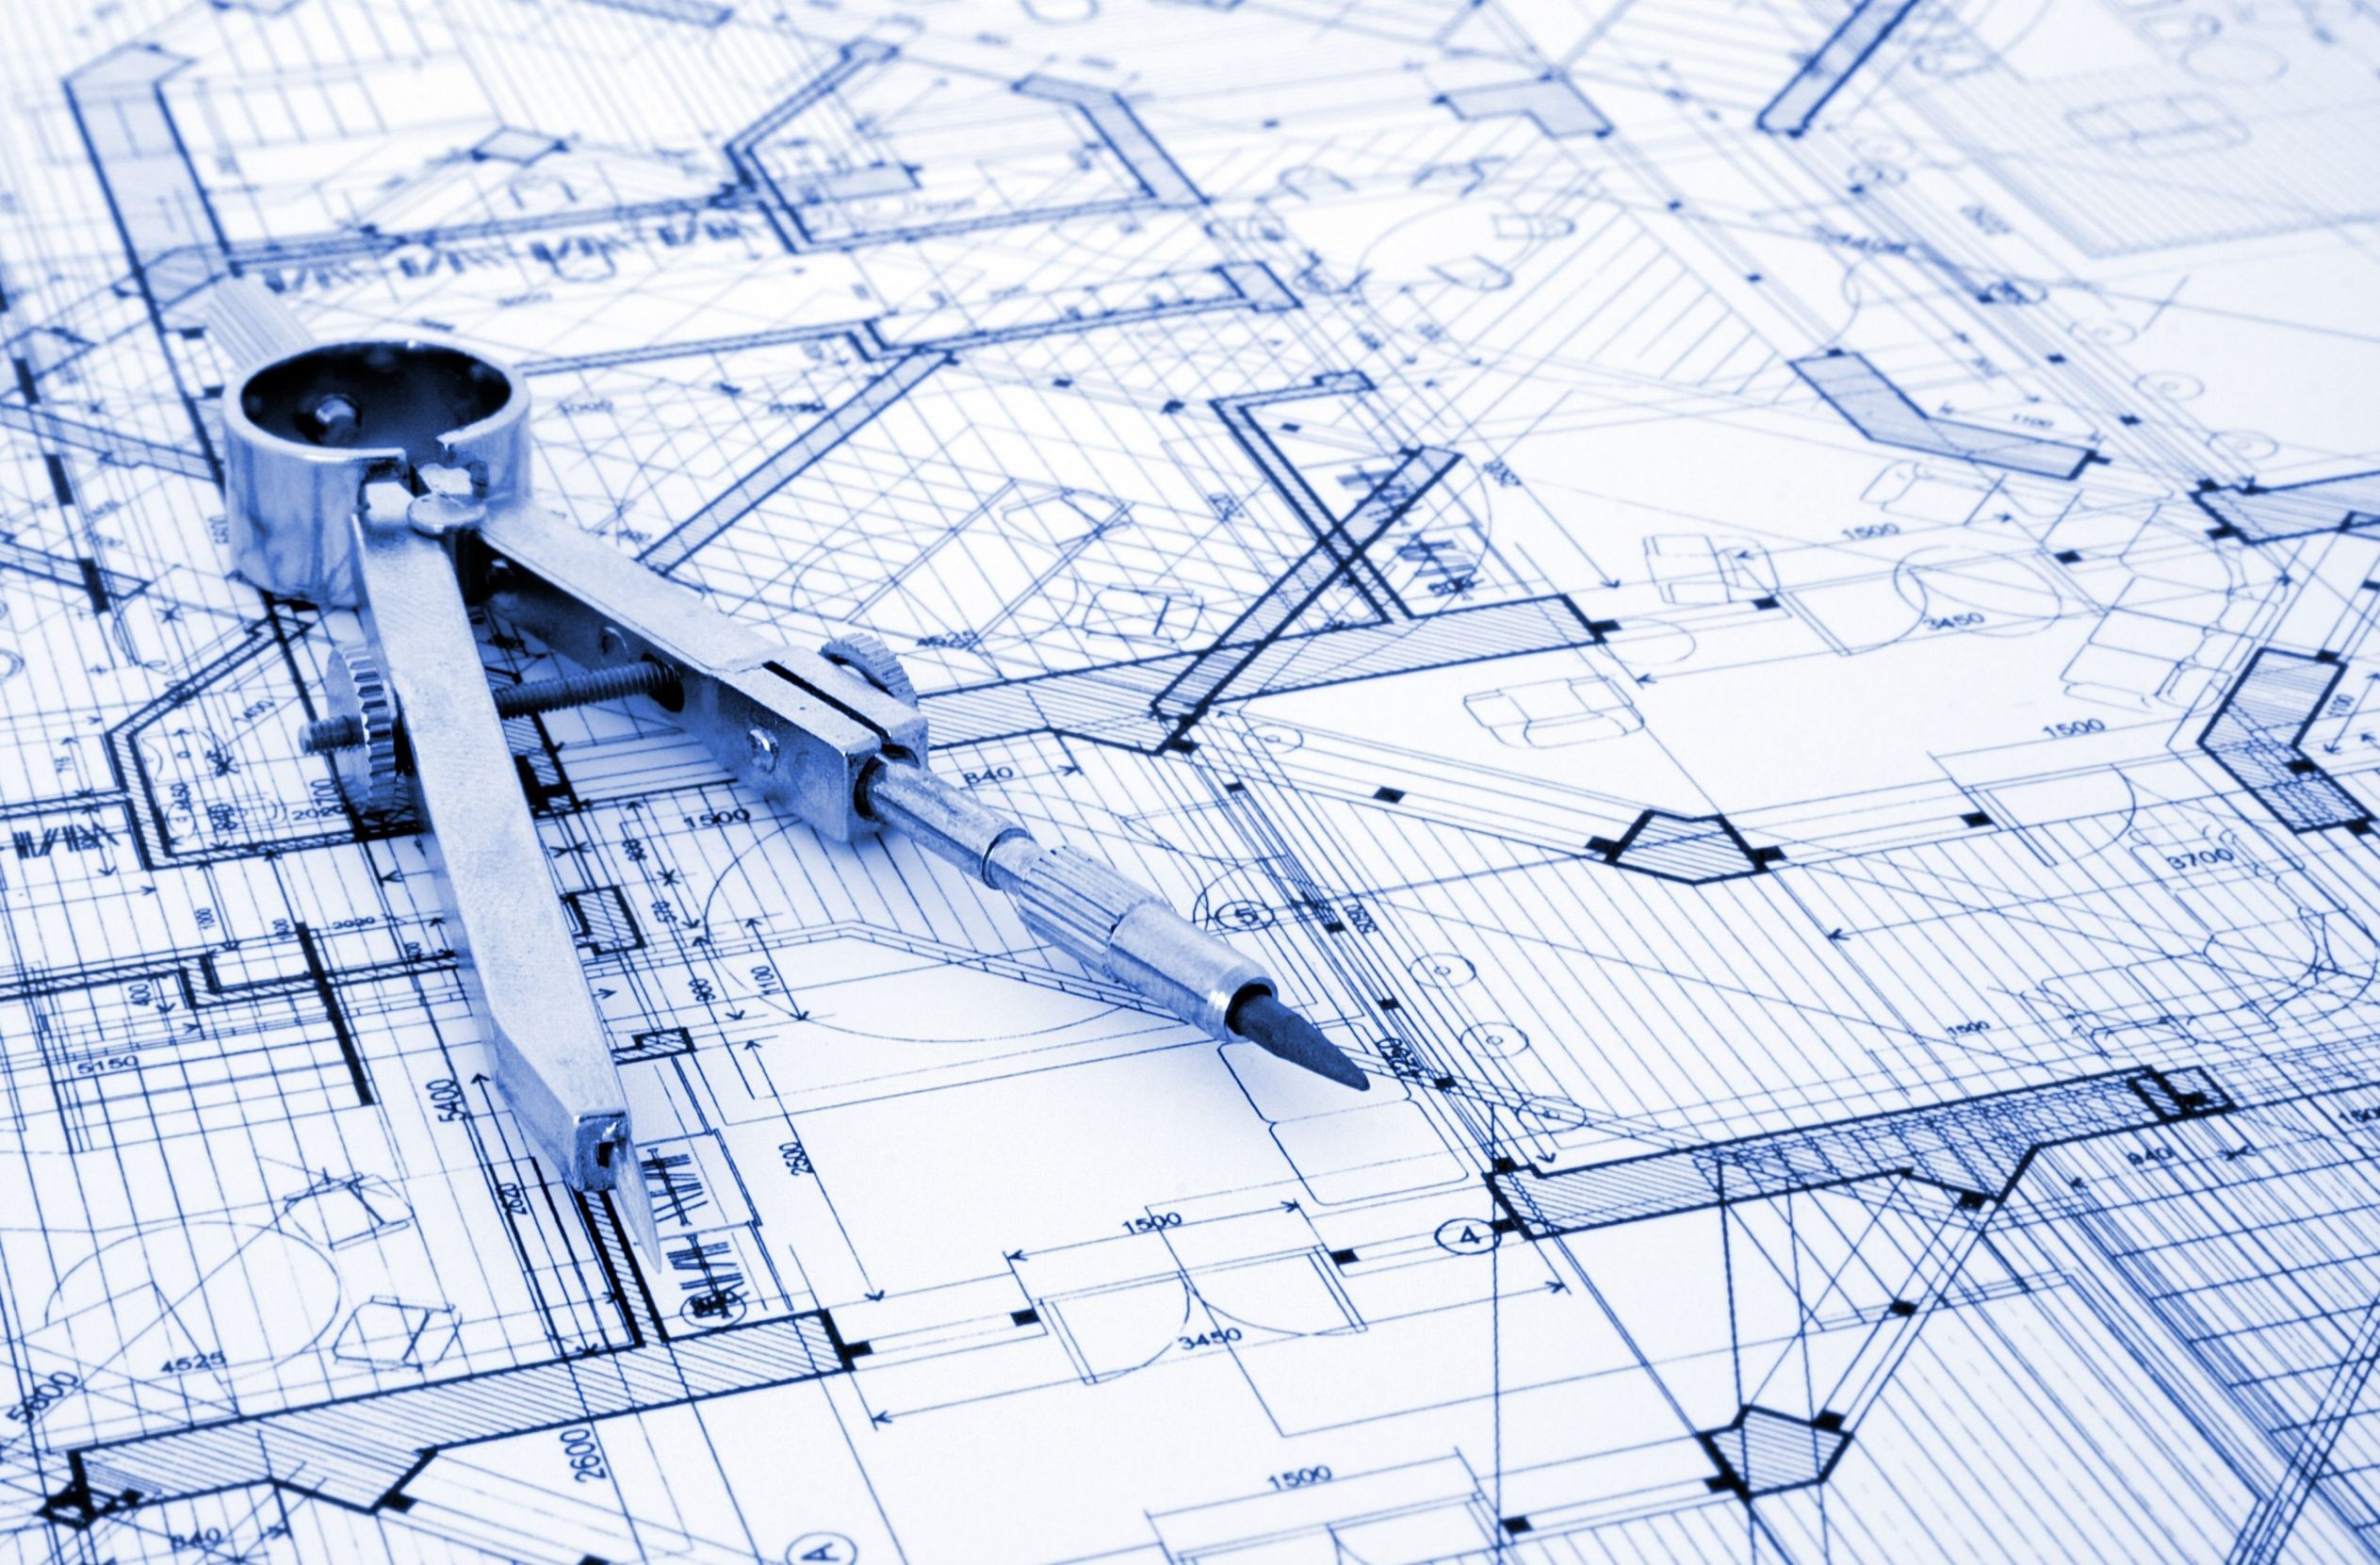 2526x1661 Civil Engineer Wallpapers ClipArt Best Desktop Background